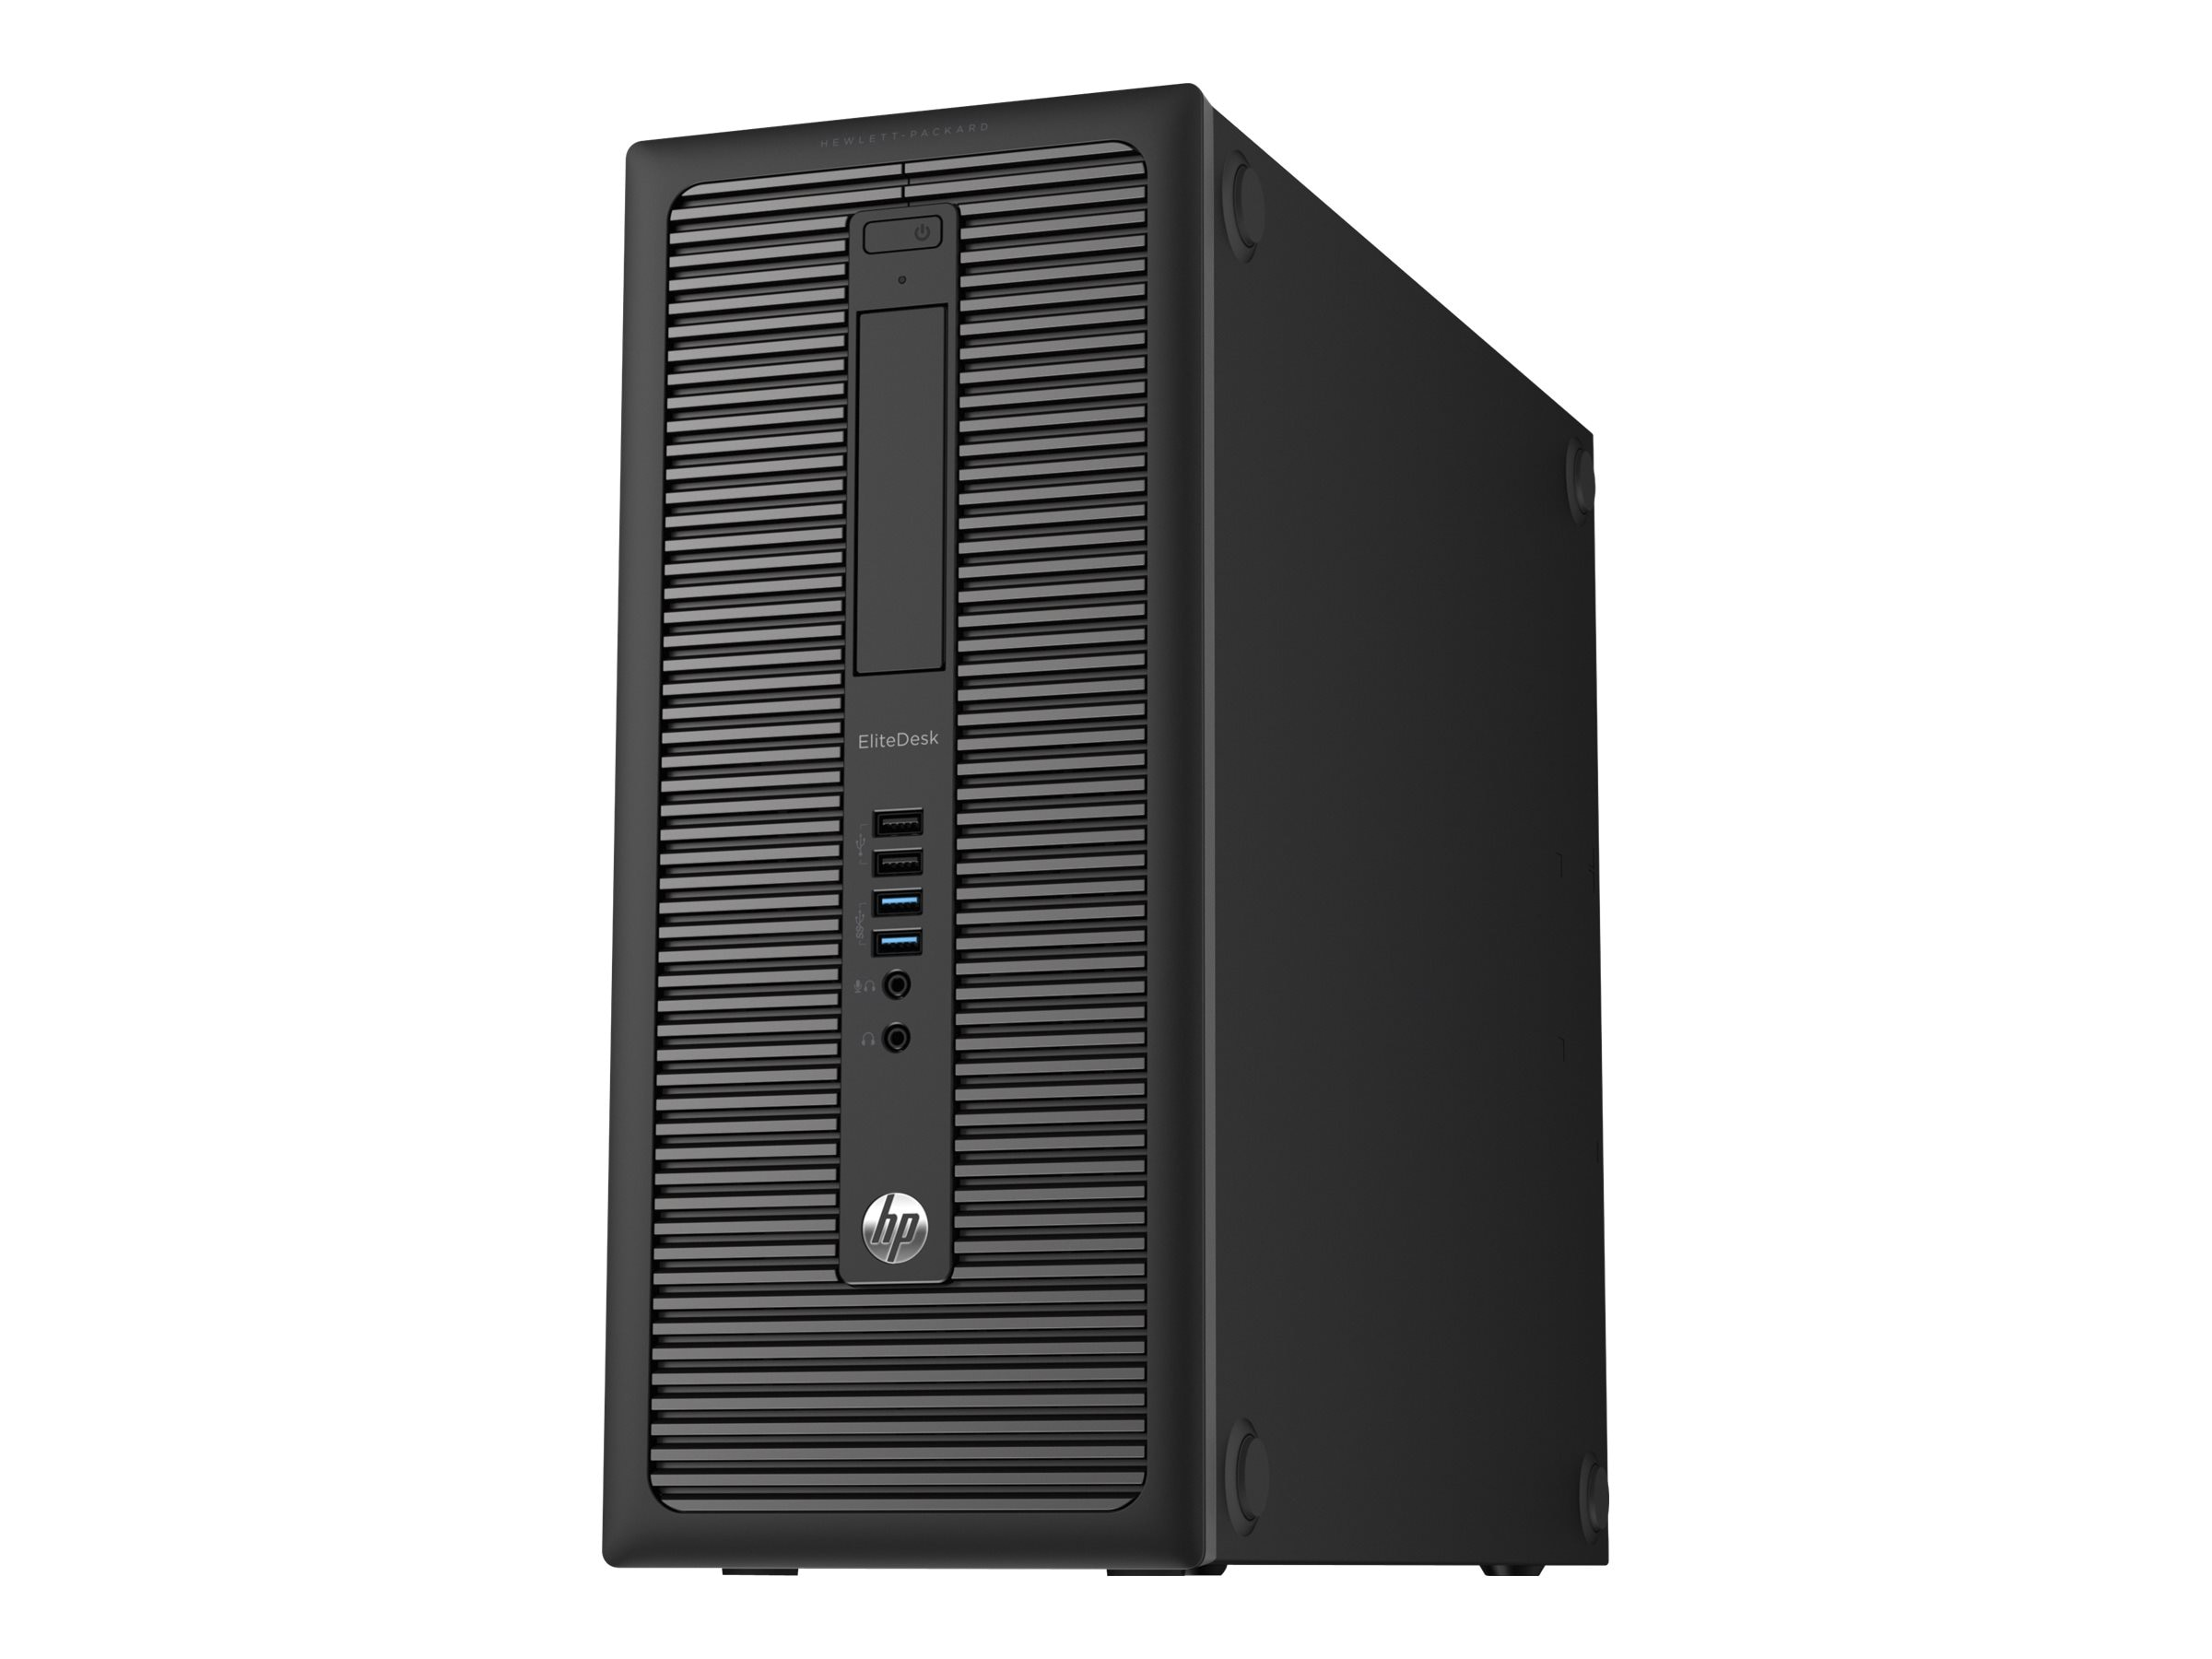 HP EliteDesk 800 Core i5-4590S 8GB 500GB, K4Y45UC#ABA